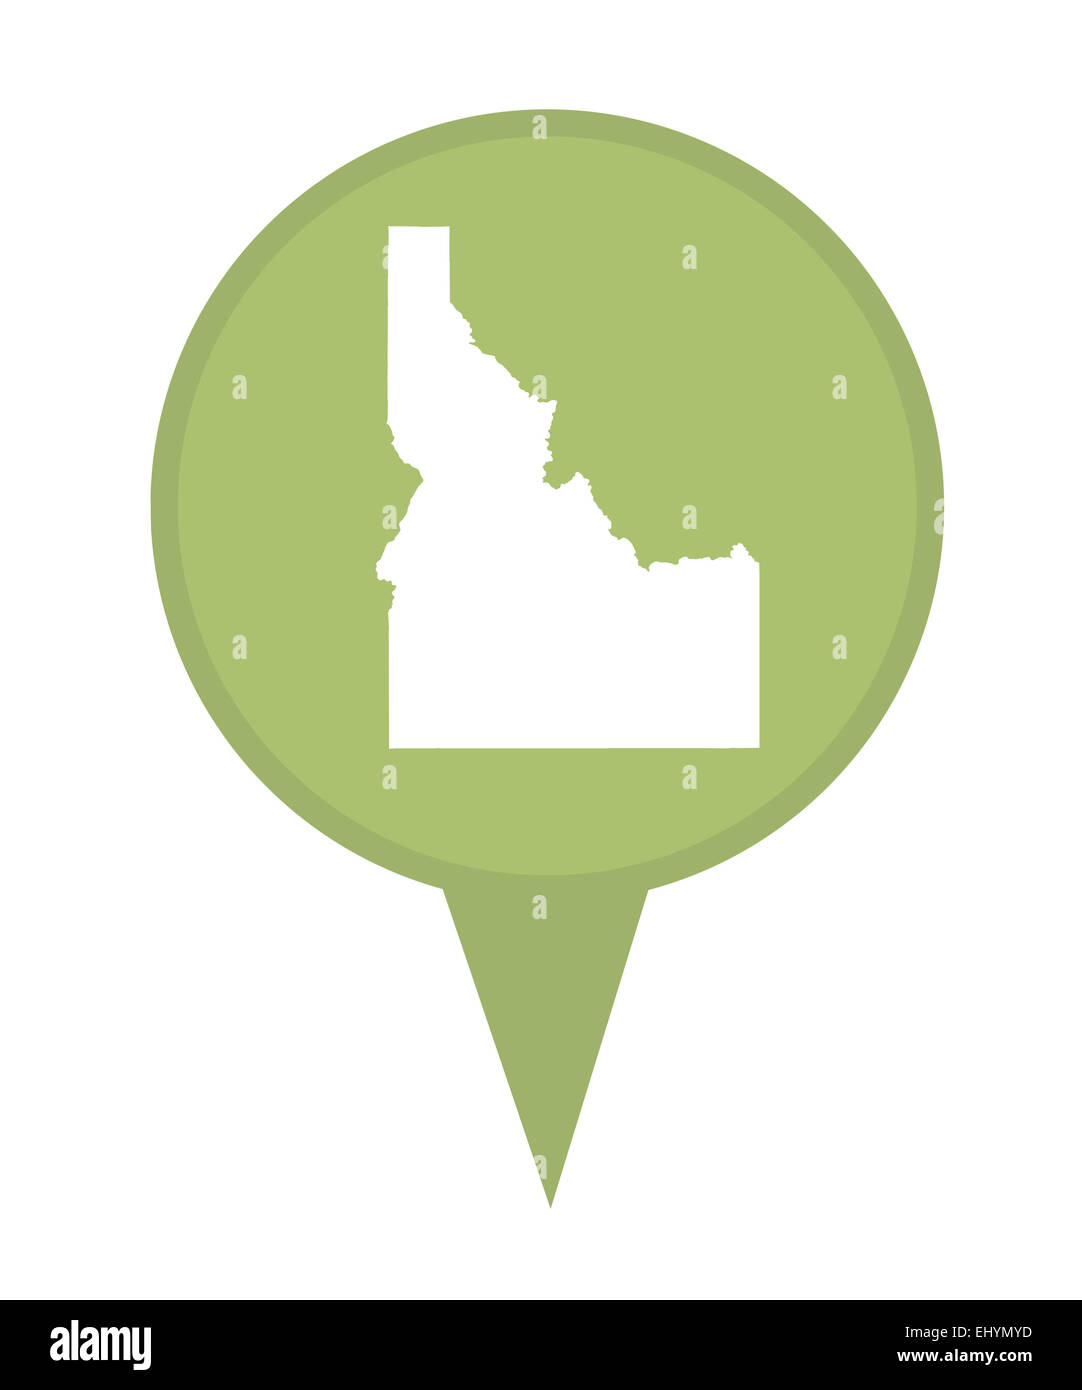 American state of Idaho marker pin isolated on a white background. - Stock Image